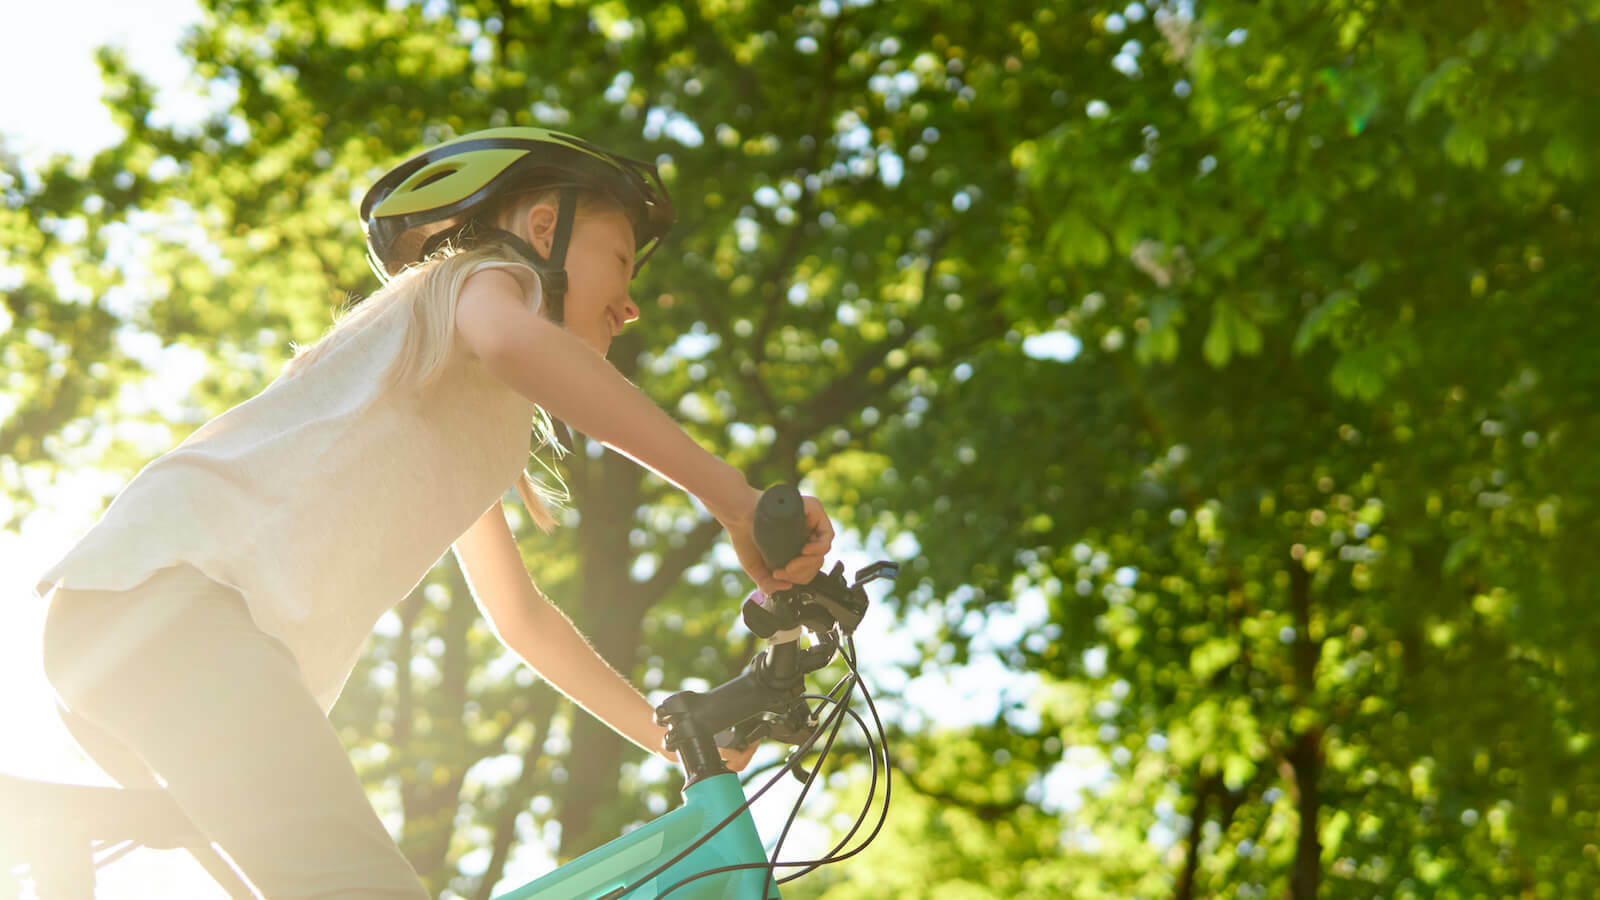 Heat poisoning: little girl cycling outdoors